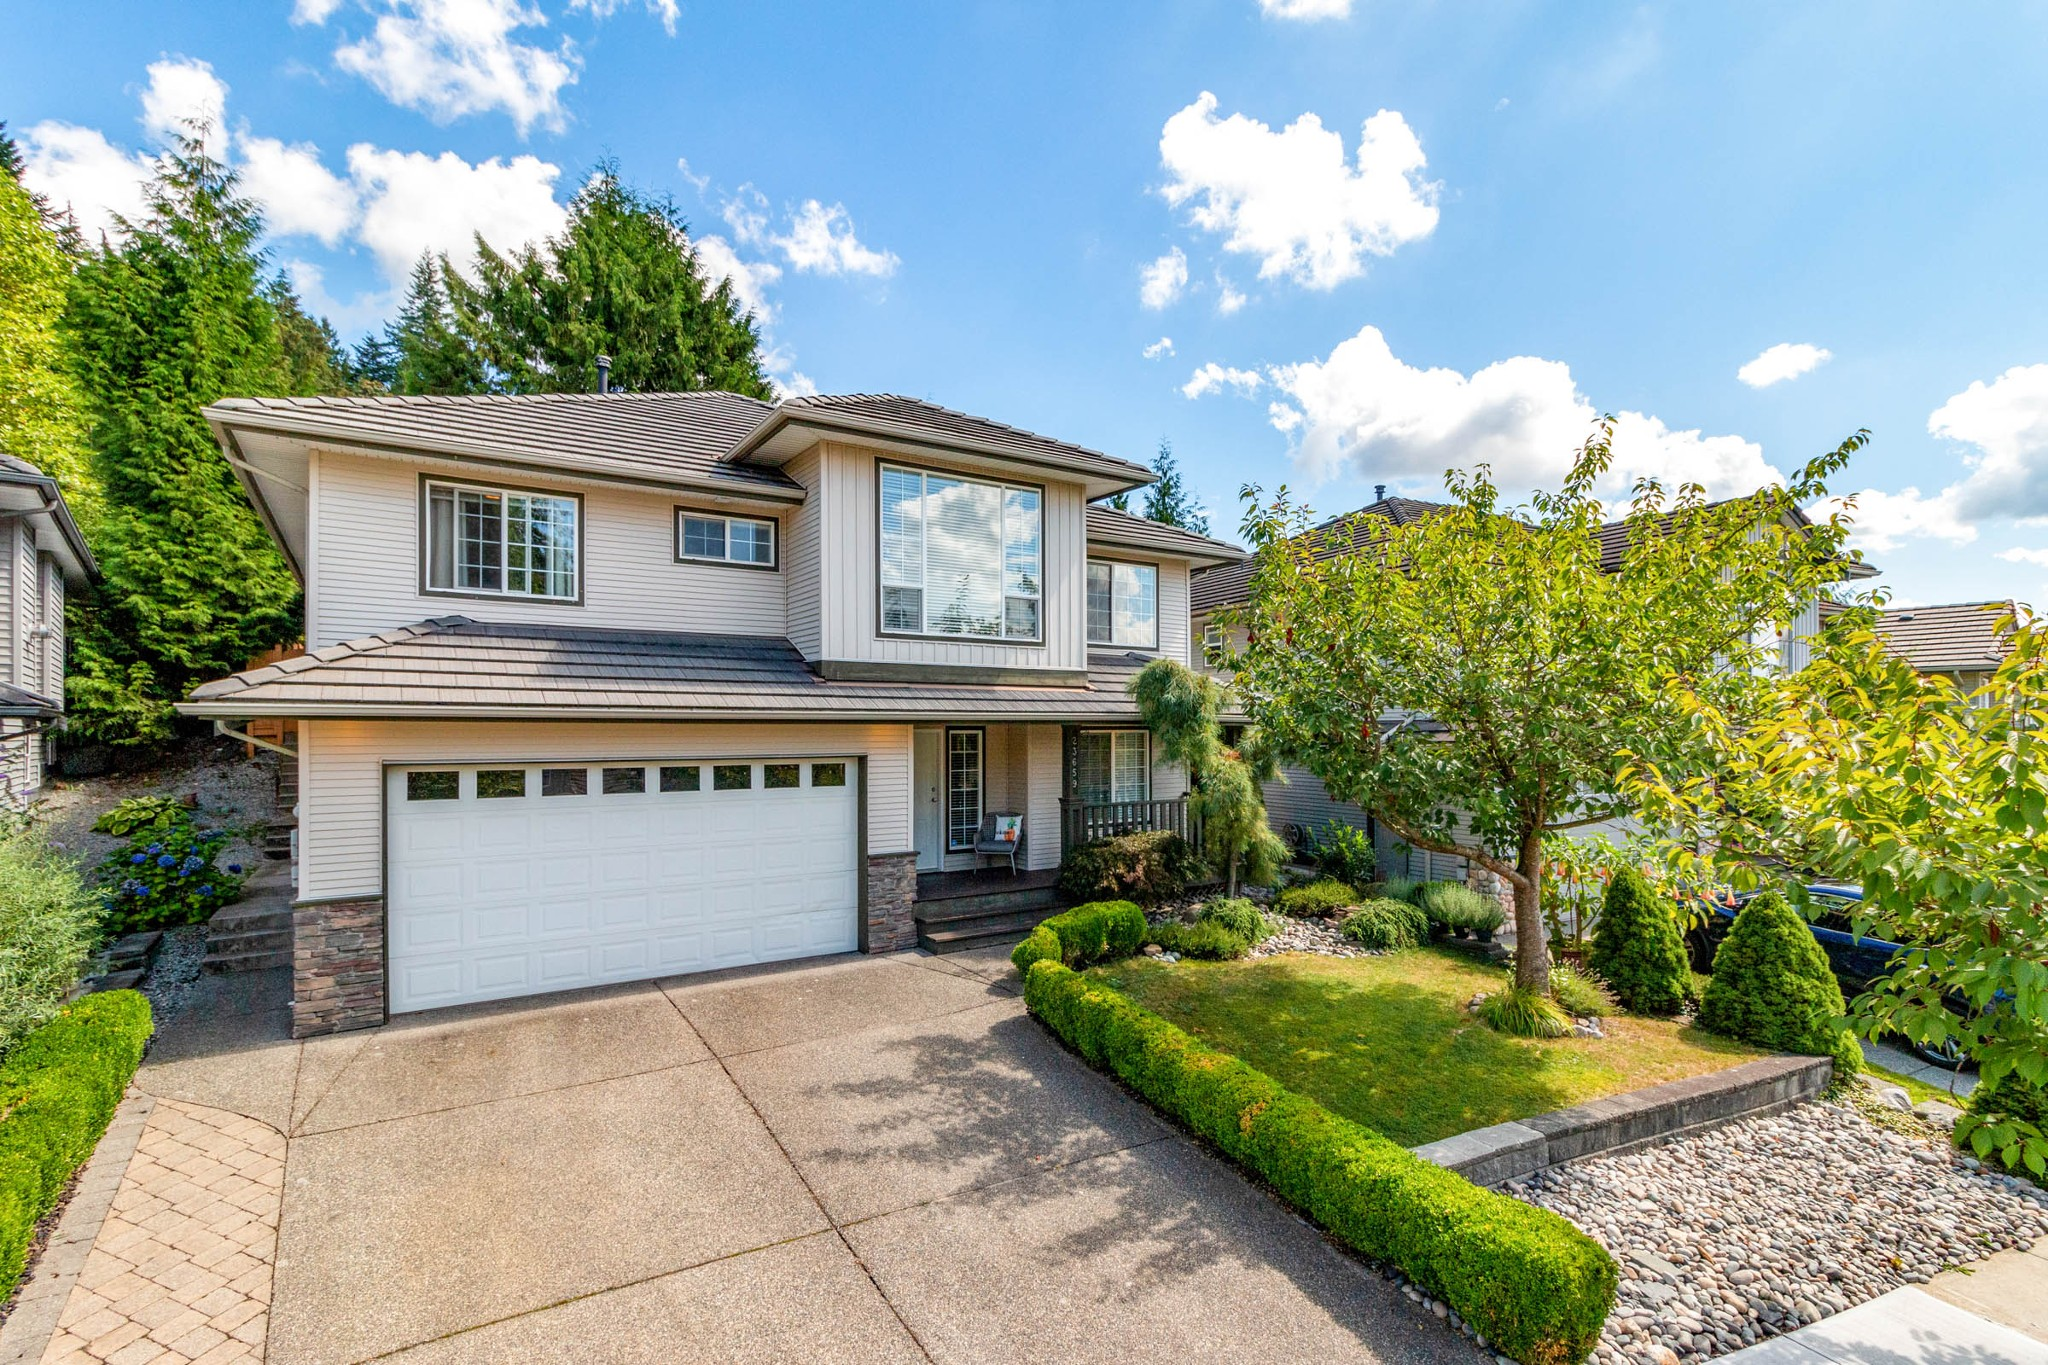 FEATURED LISTING: 23659 ROCK RIDGE Drive Maple Ridge